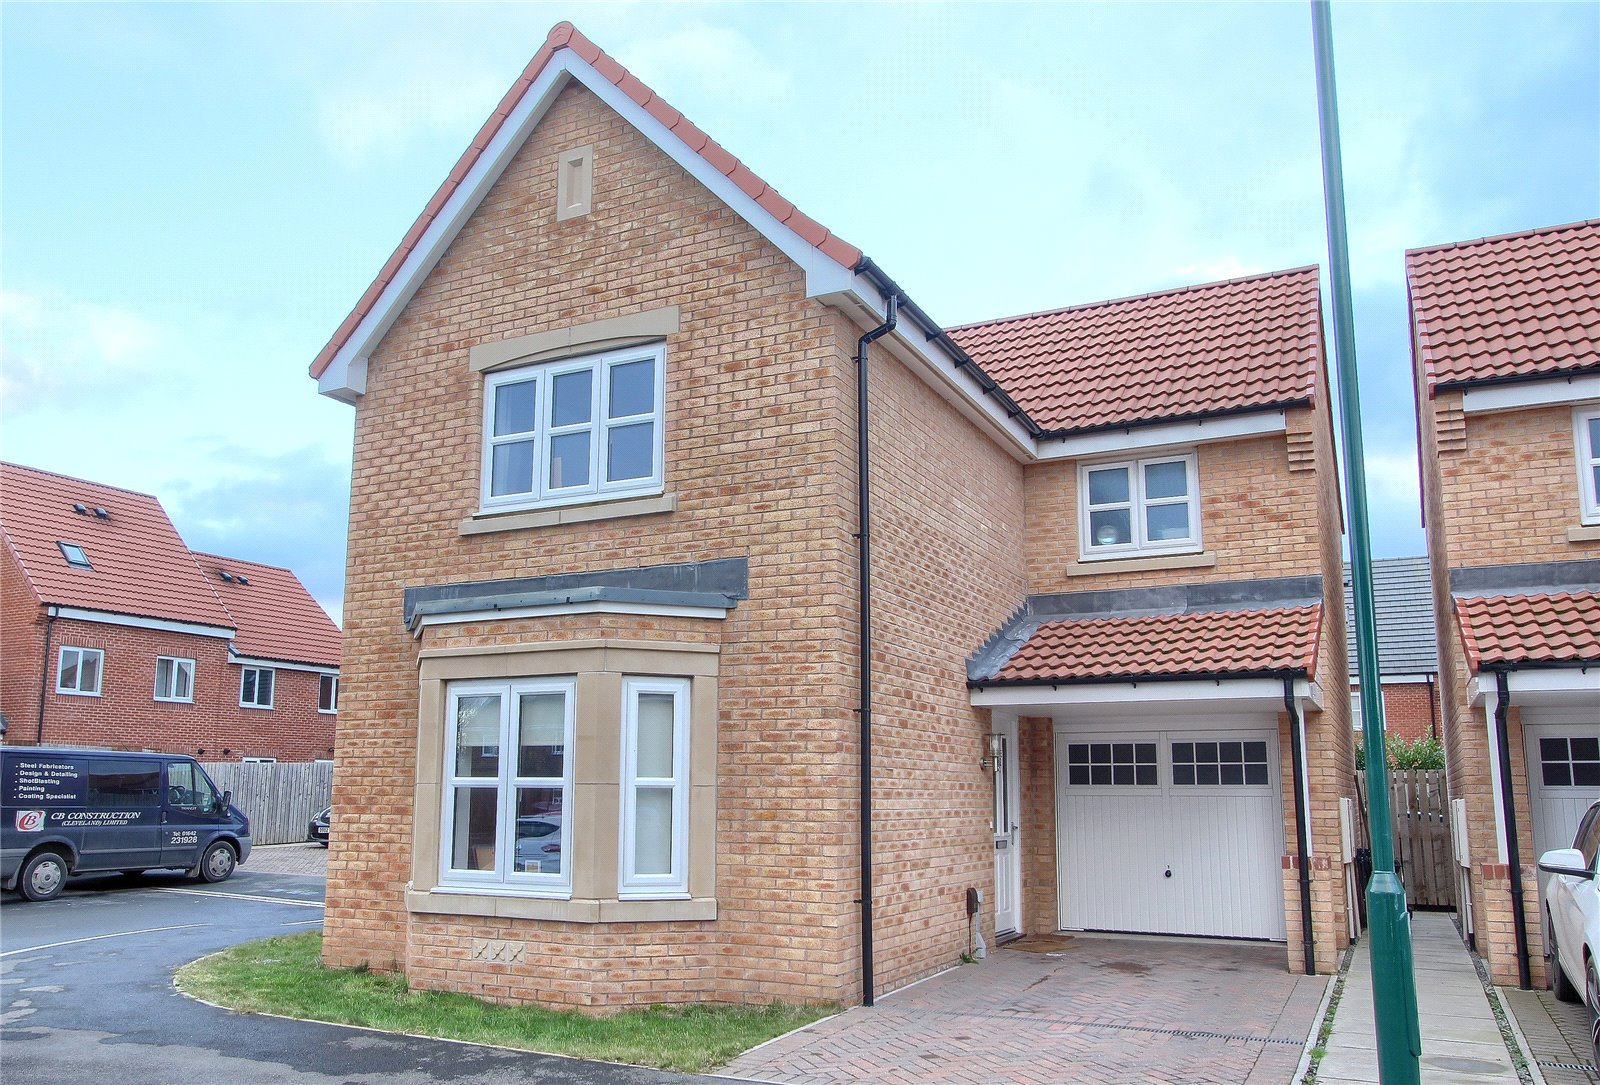 3 bed house for sale in College Gardens, Redcar 1